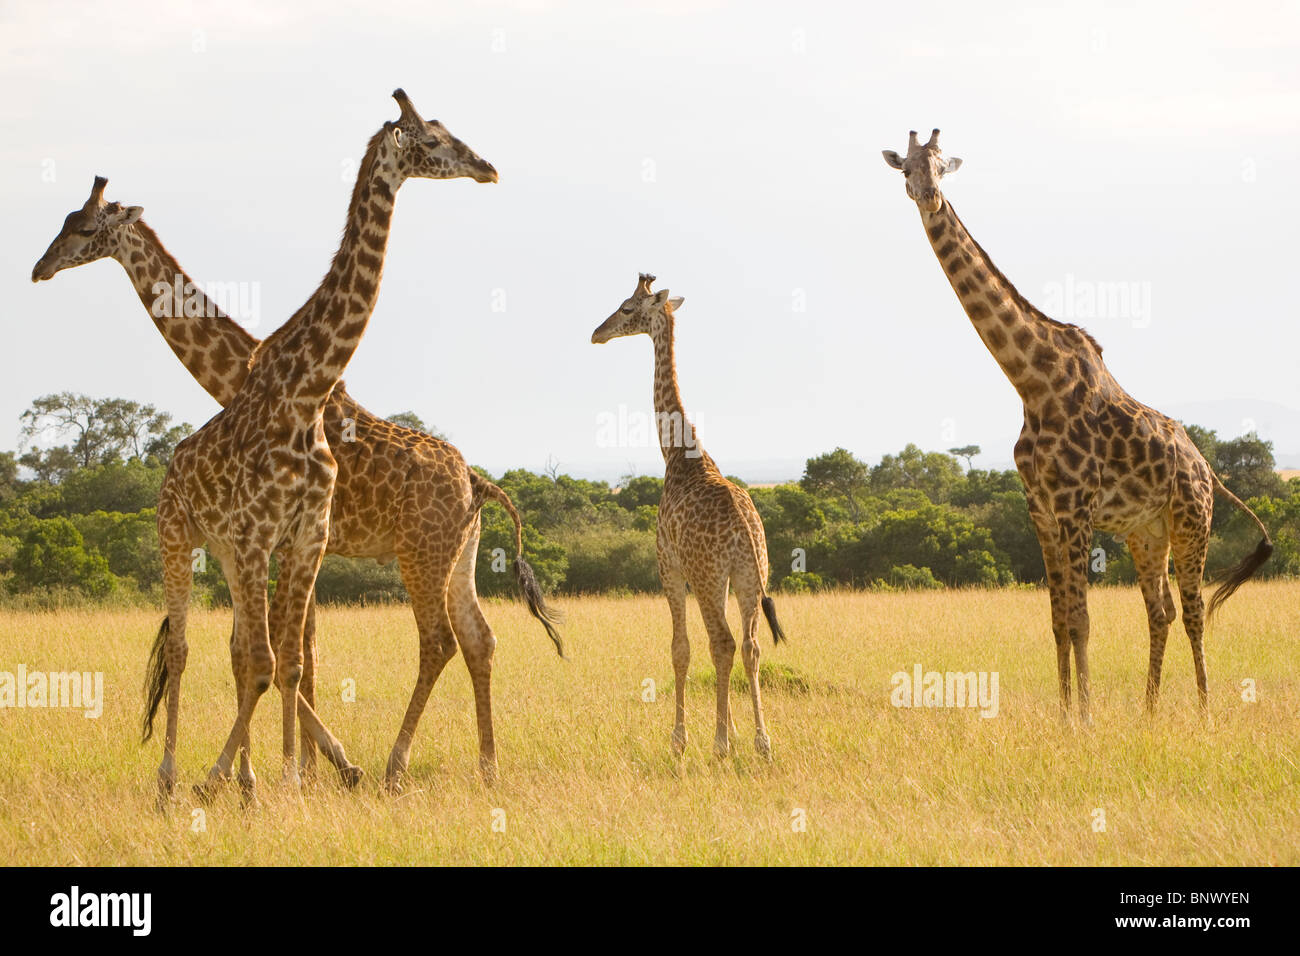 Giraffe in the Masai Mara Kenya - Stock Image